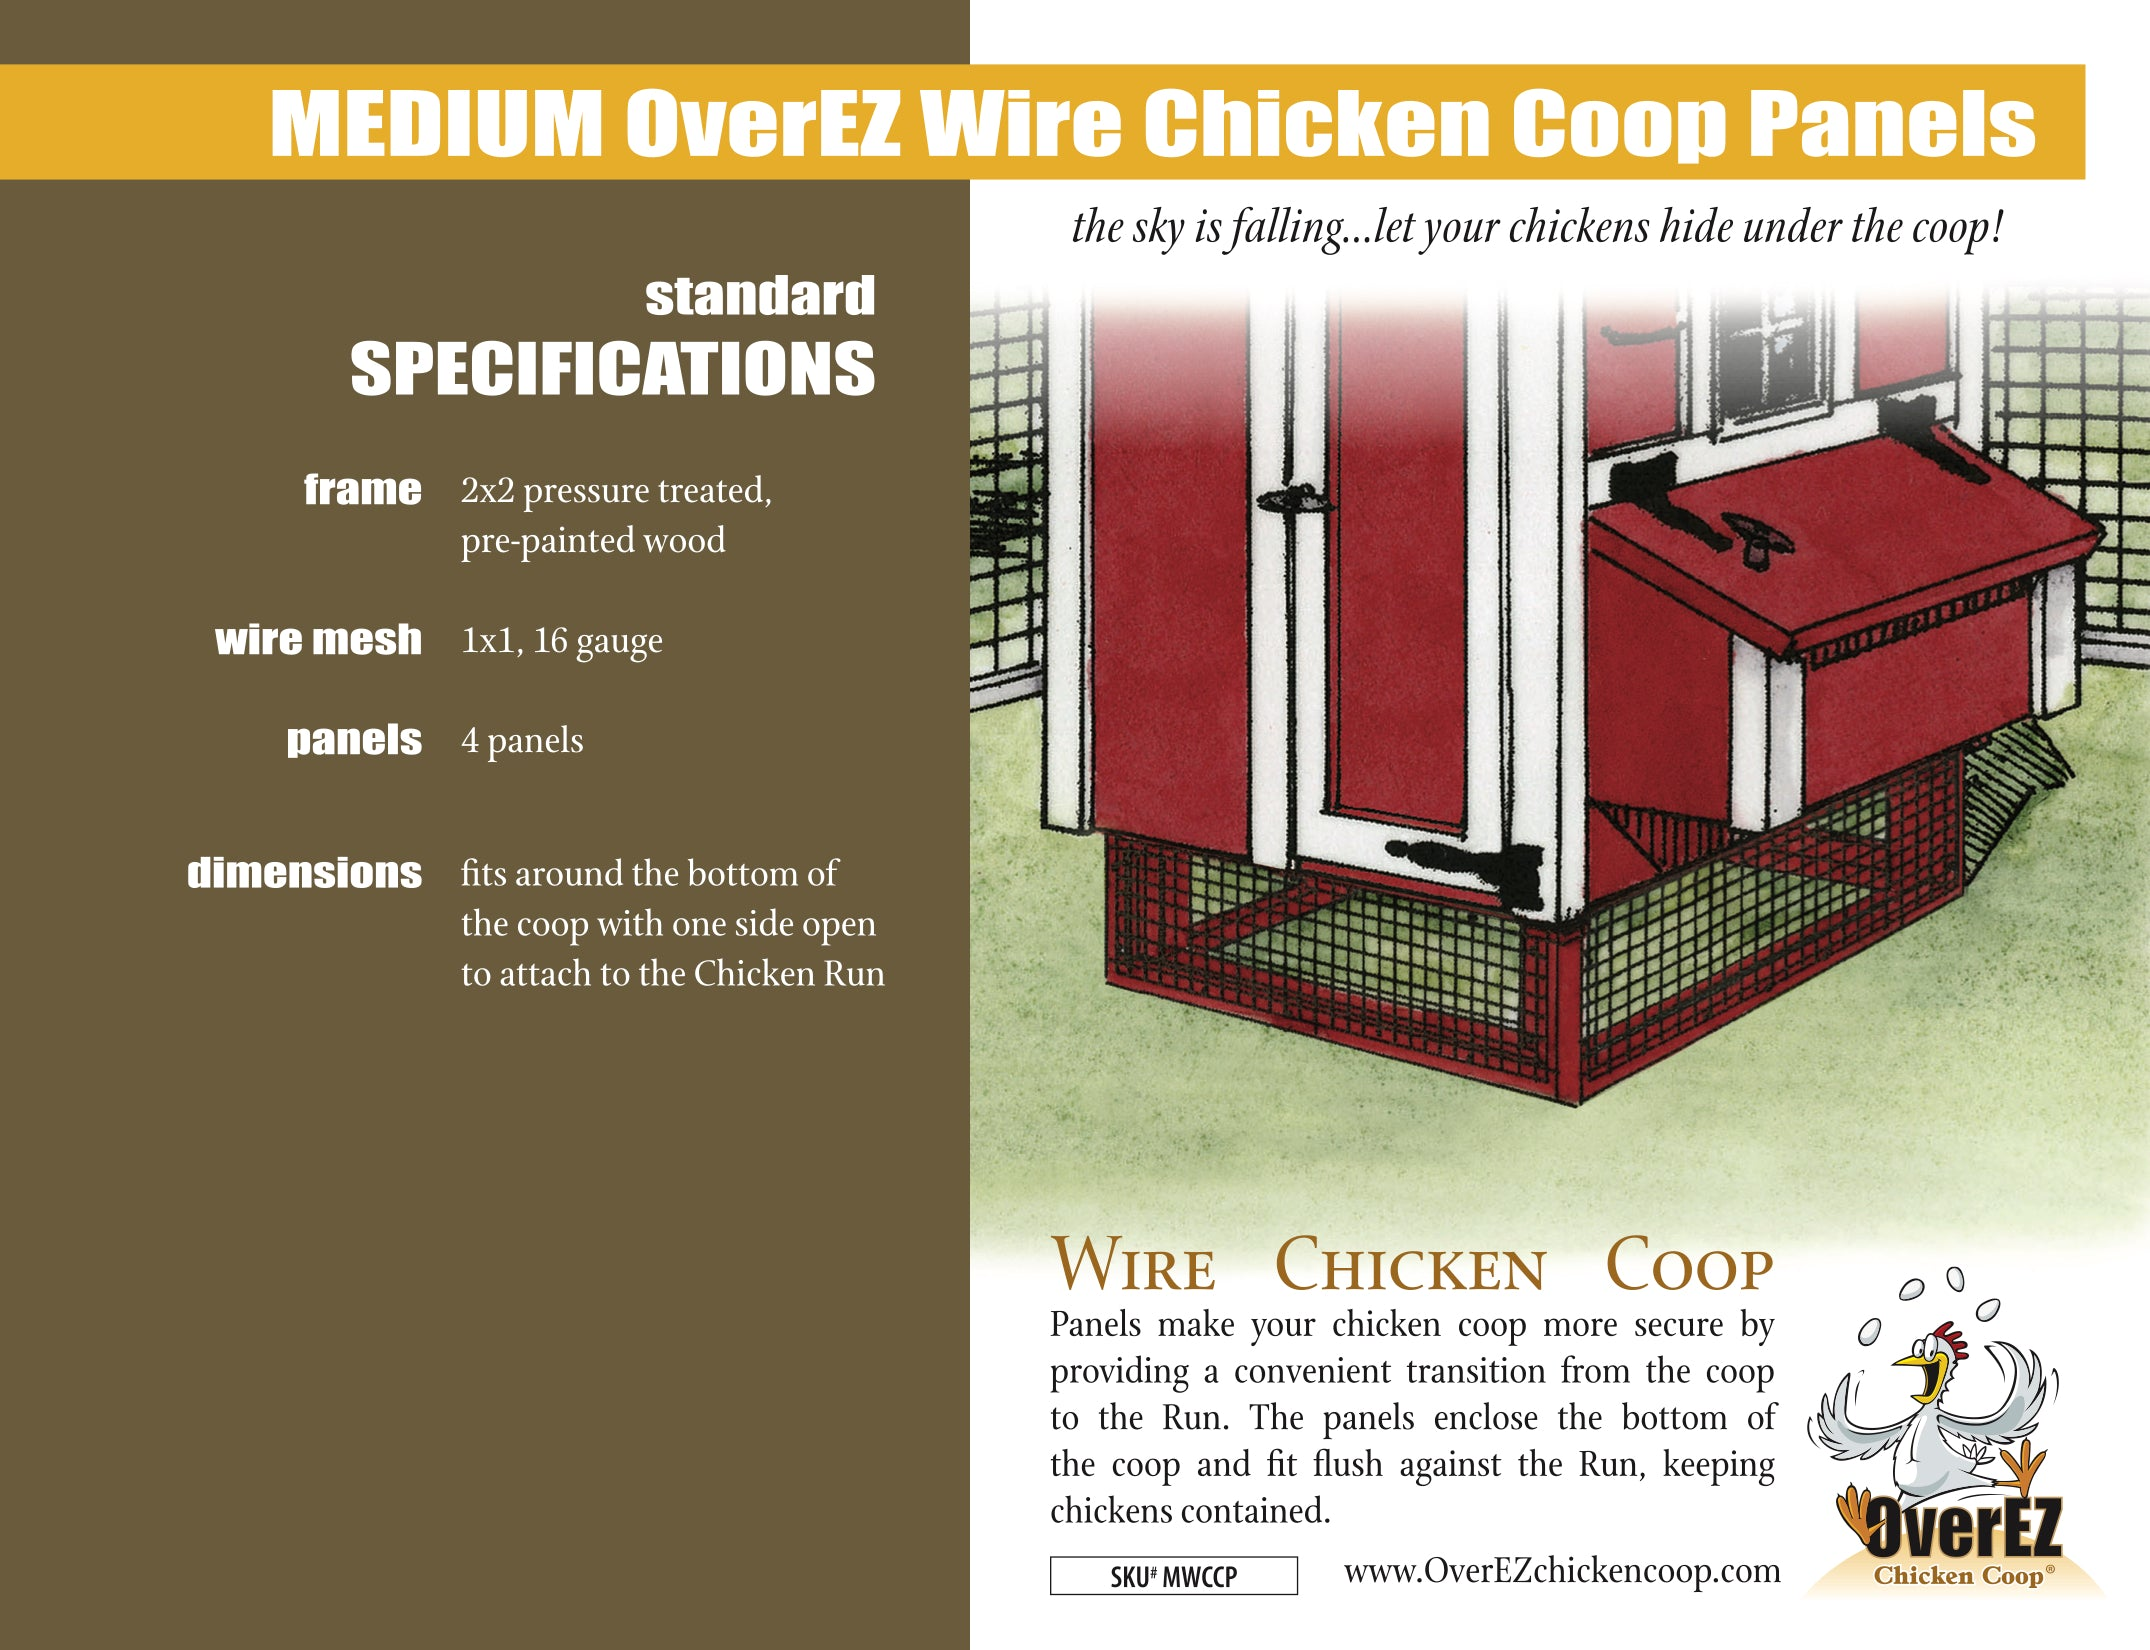 Medium OverEZ Wire Chicken Coop Panels Spec Sheet